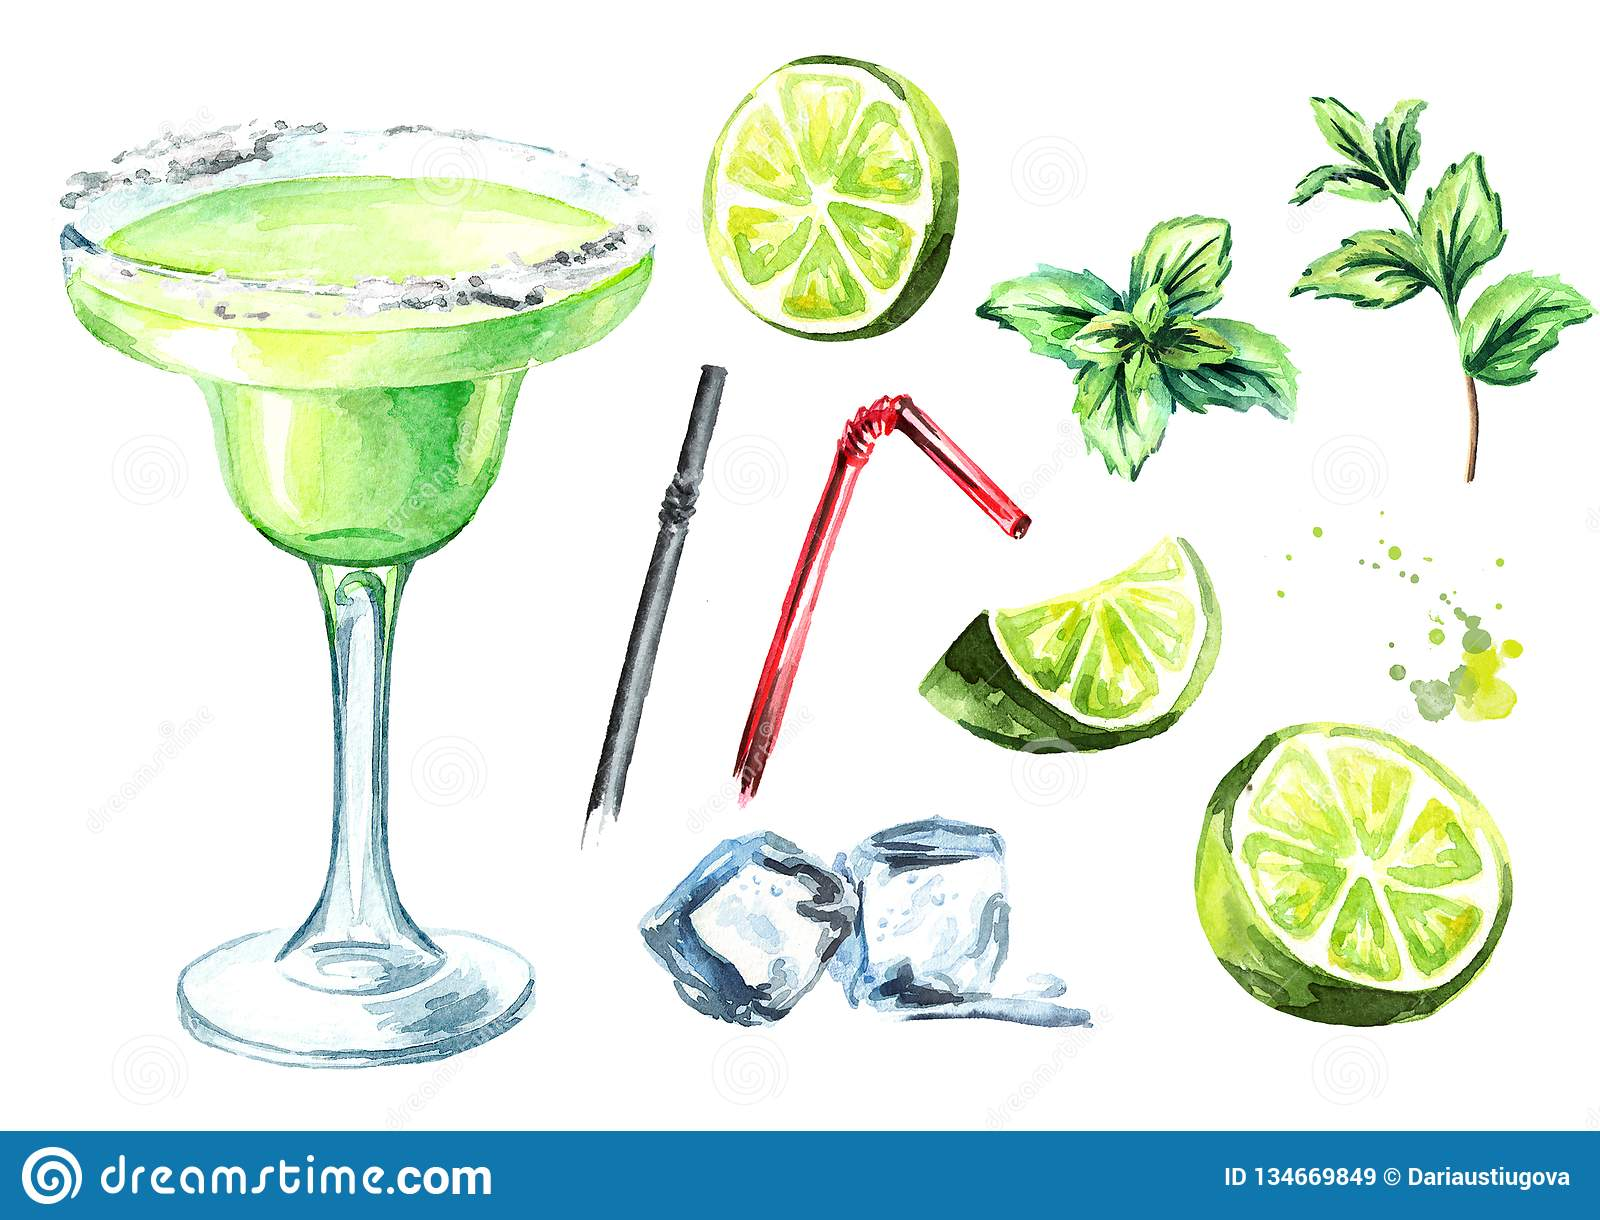 Margarita cocktail with decor elements lime, mint and ice cubes. Watercolor hand drawn illustration, isolated on white background